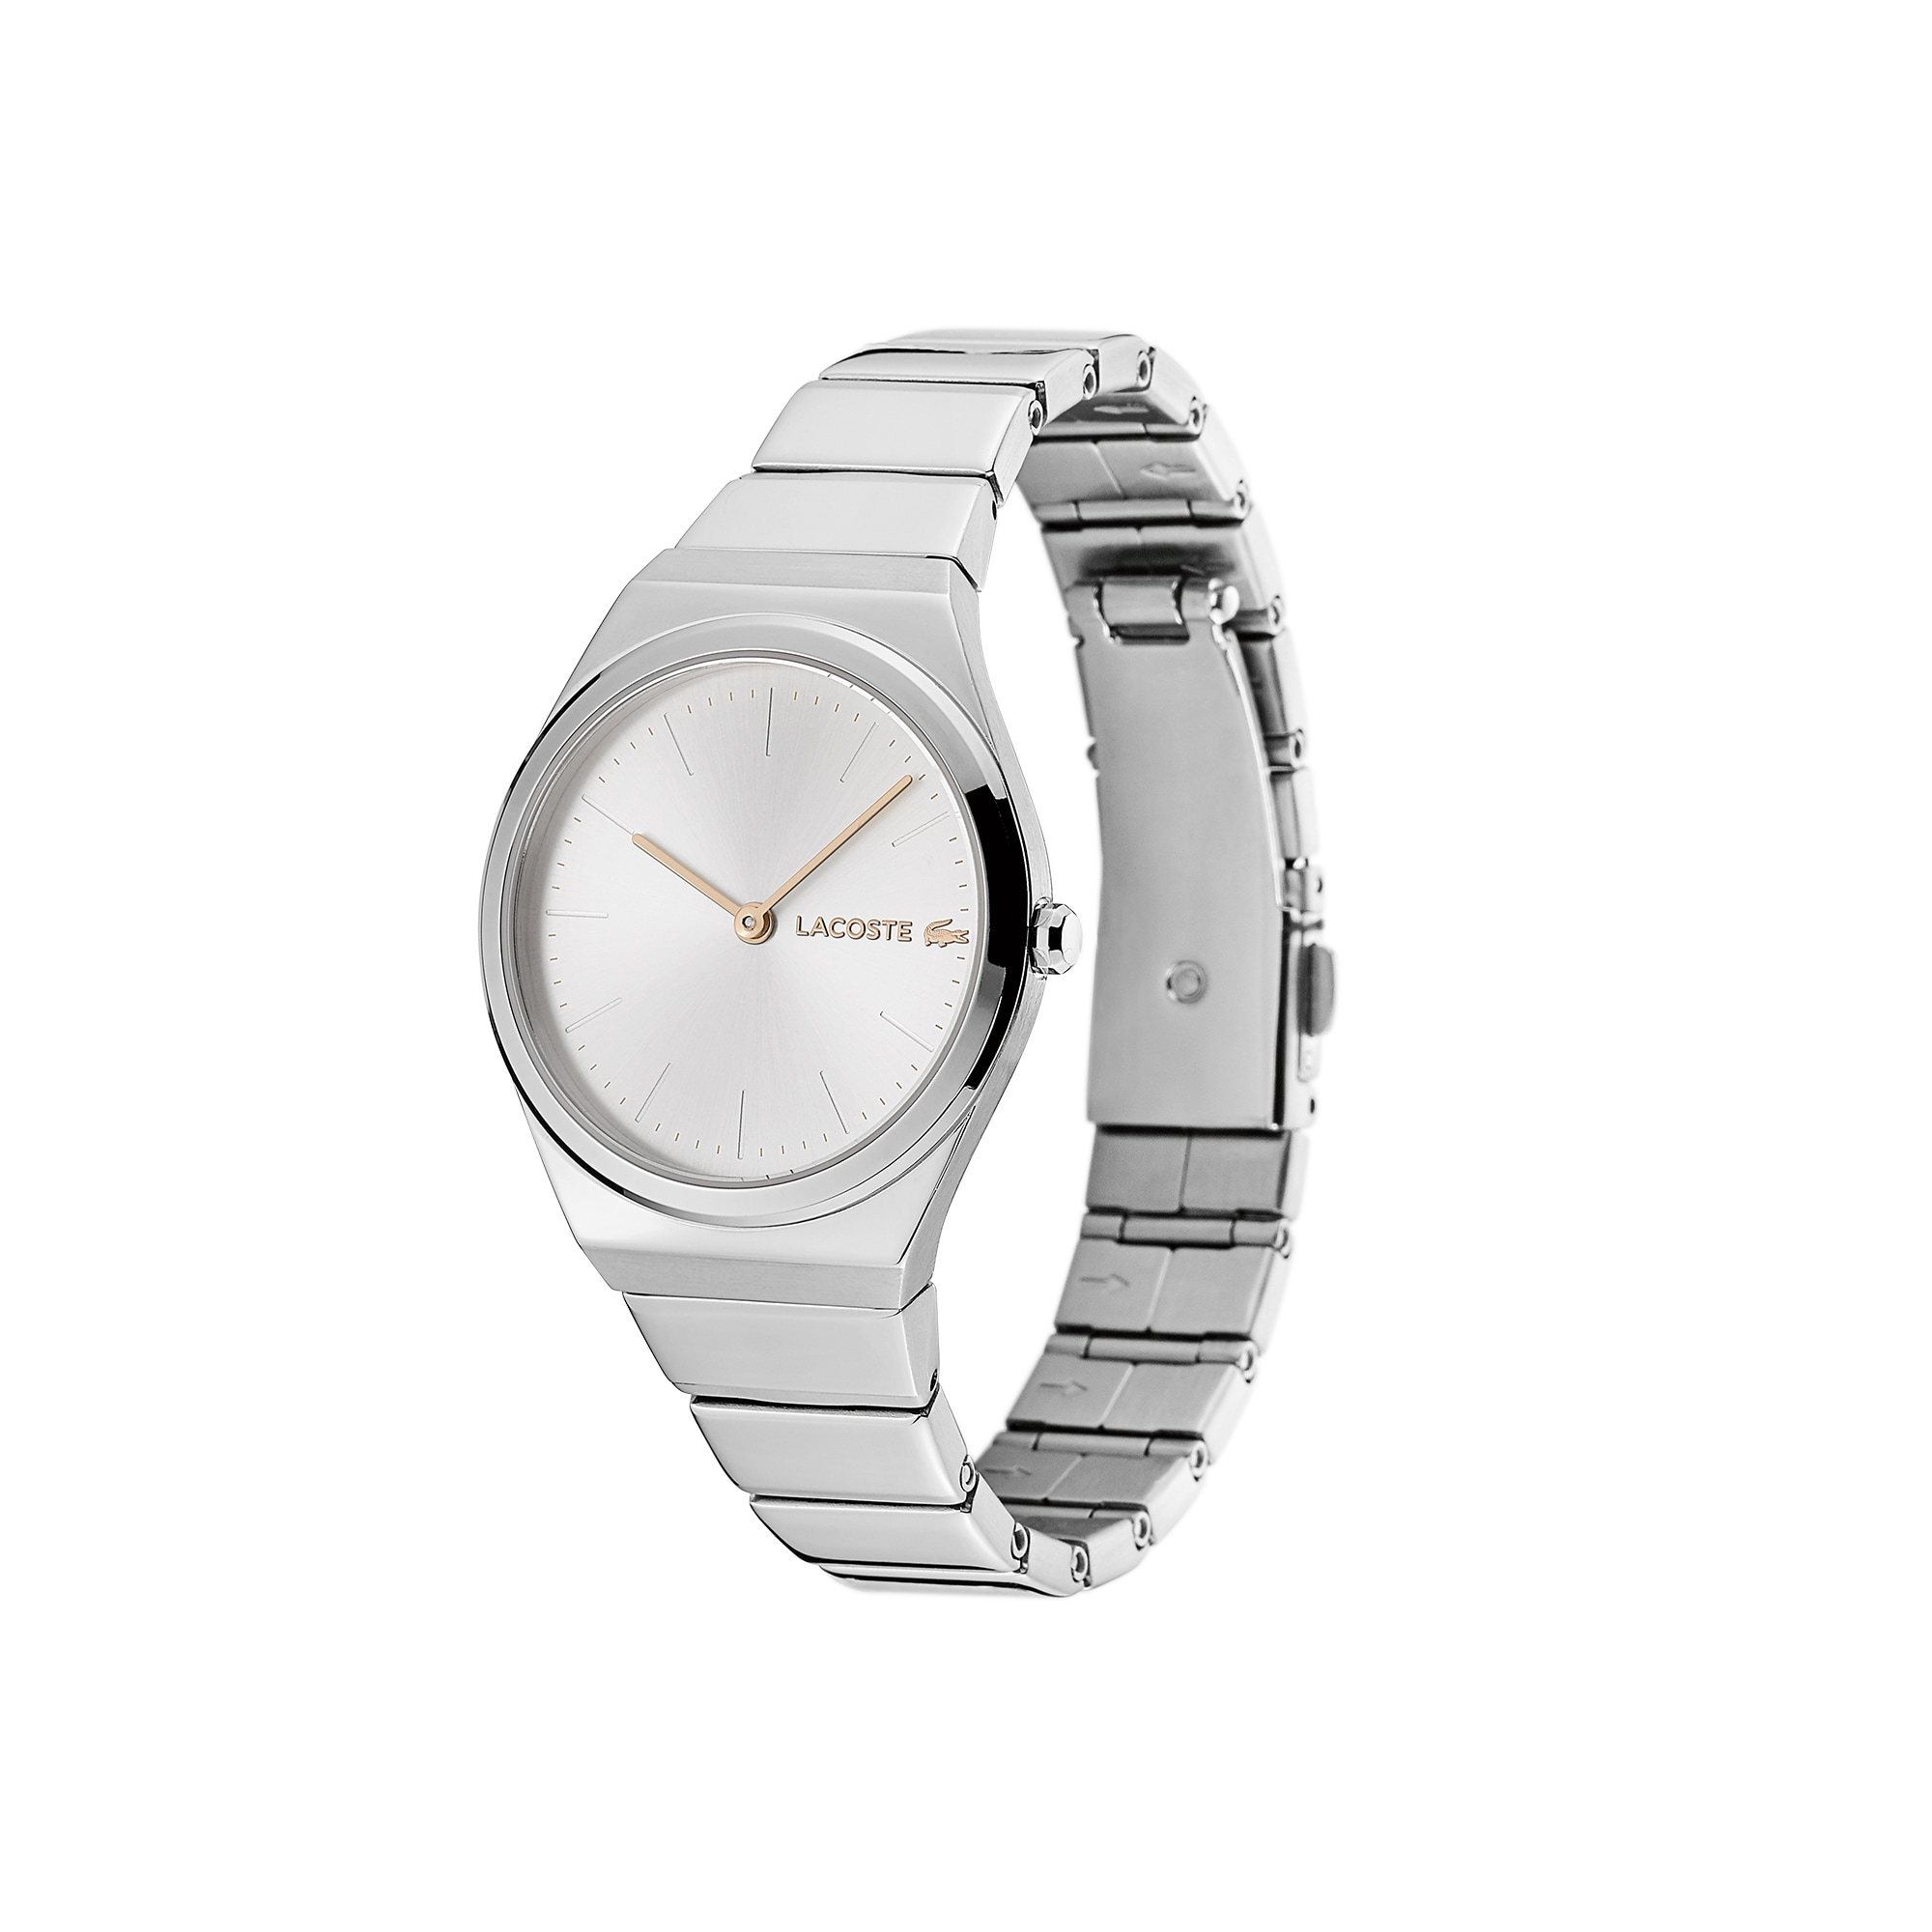 Women's Mia Watch with Stainless Steel Bracelet